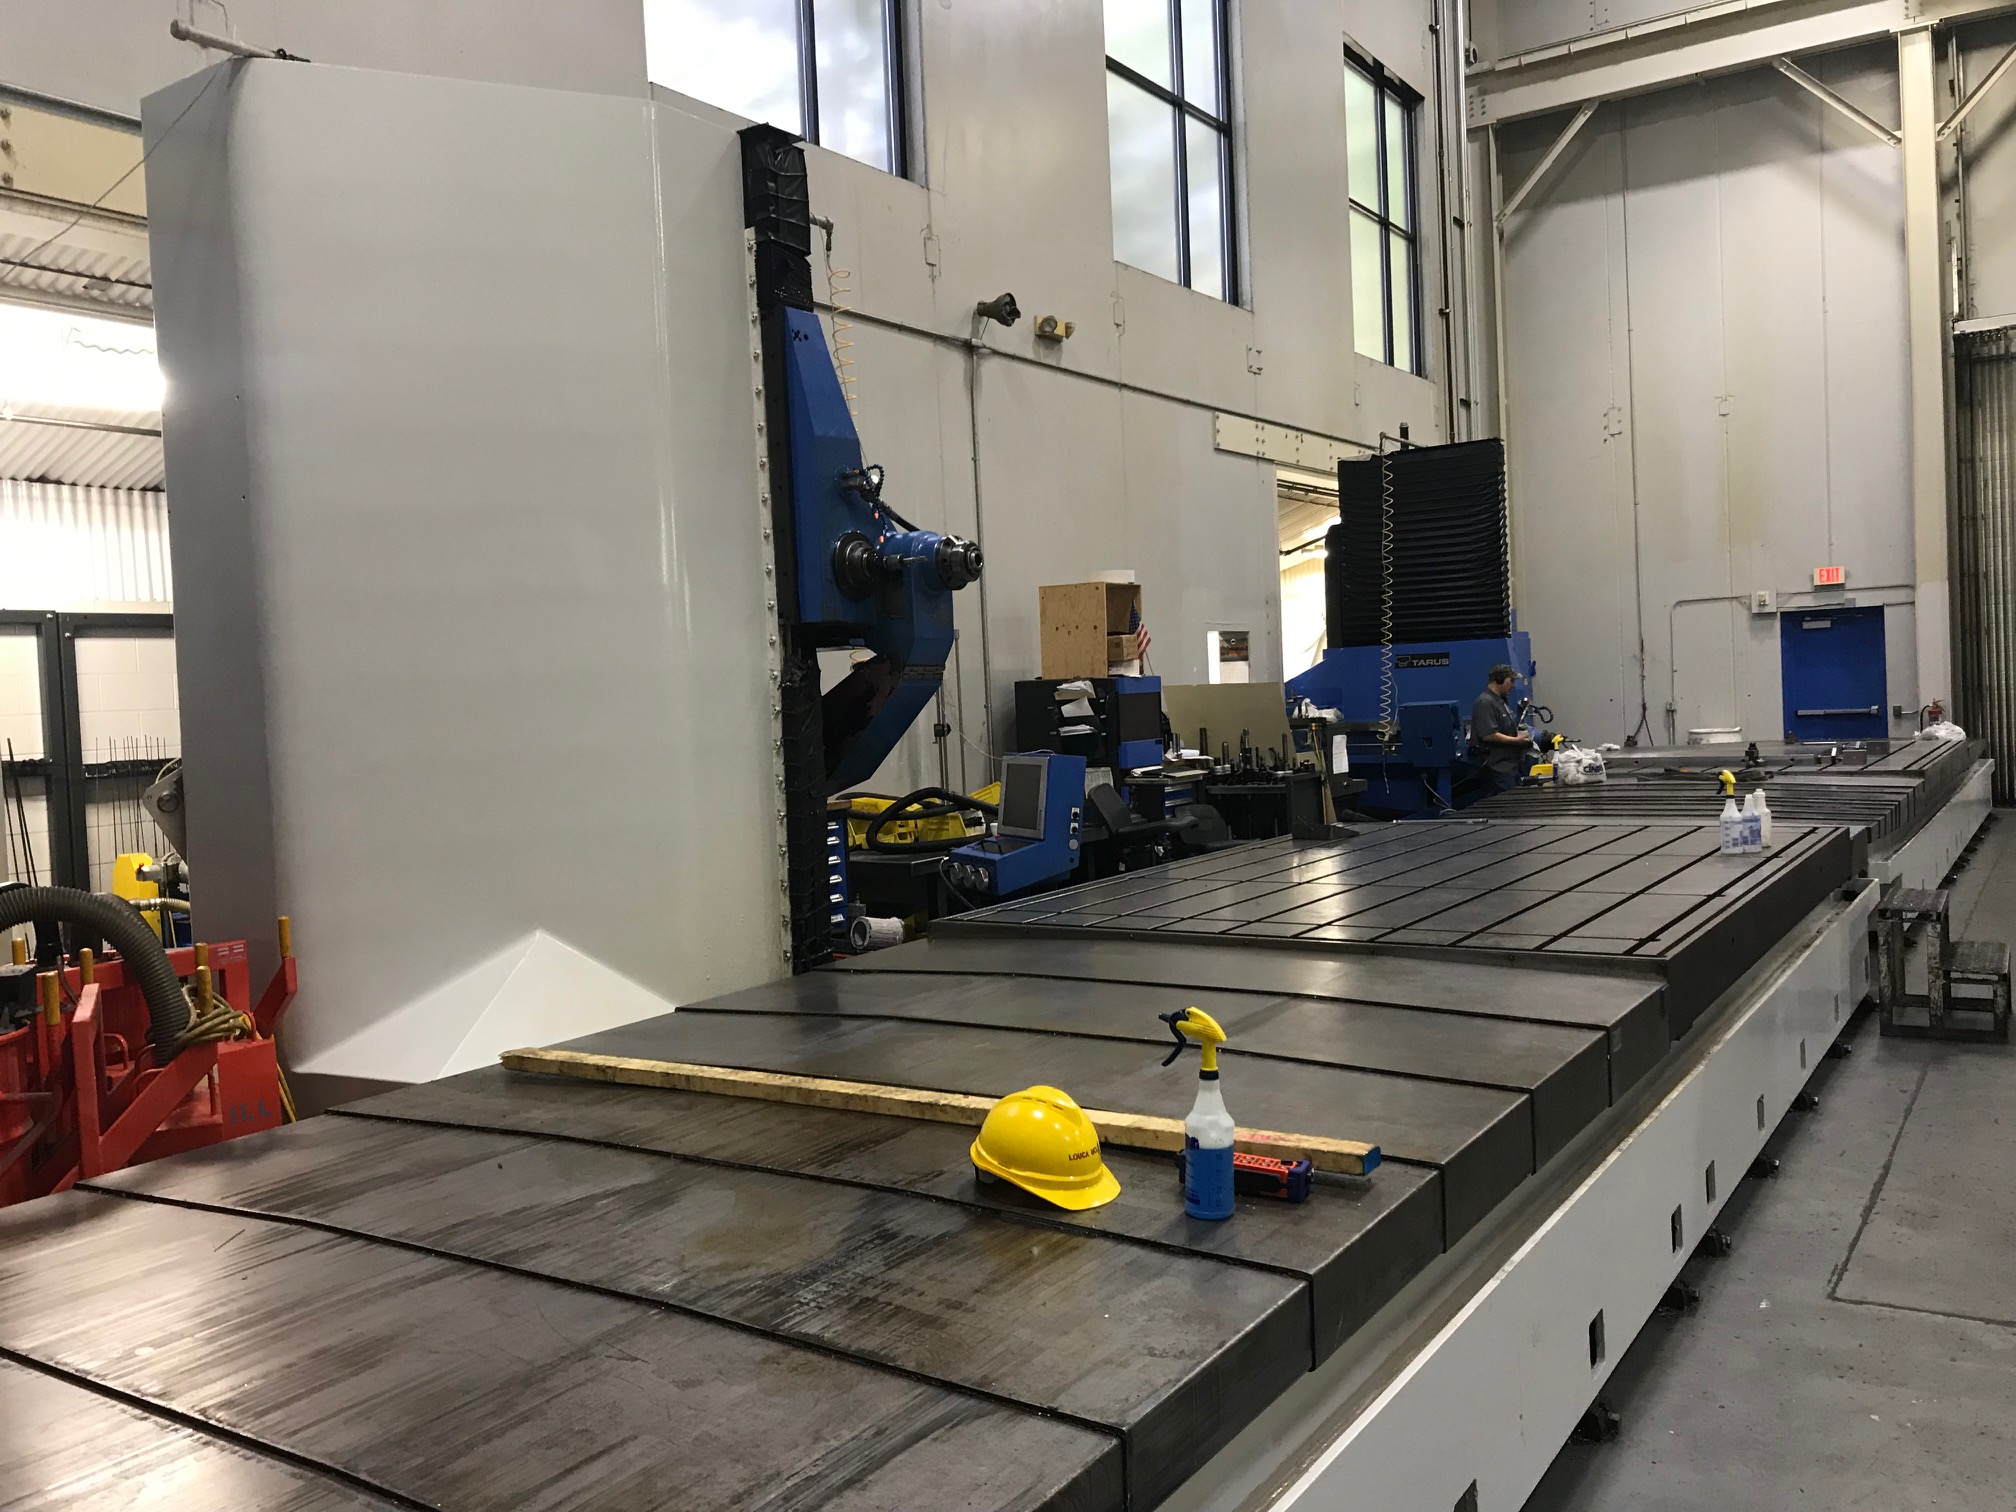 TARUS MODEL TPTCGD512S, 4-AXIS Dual CNC Gun Drilling System (sharing a Centralized Coolant System) - Image 5 of 15